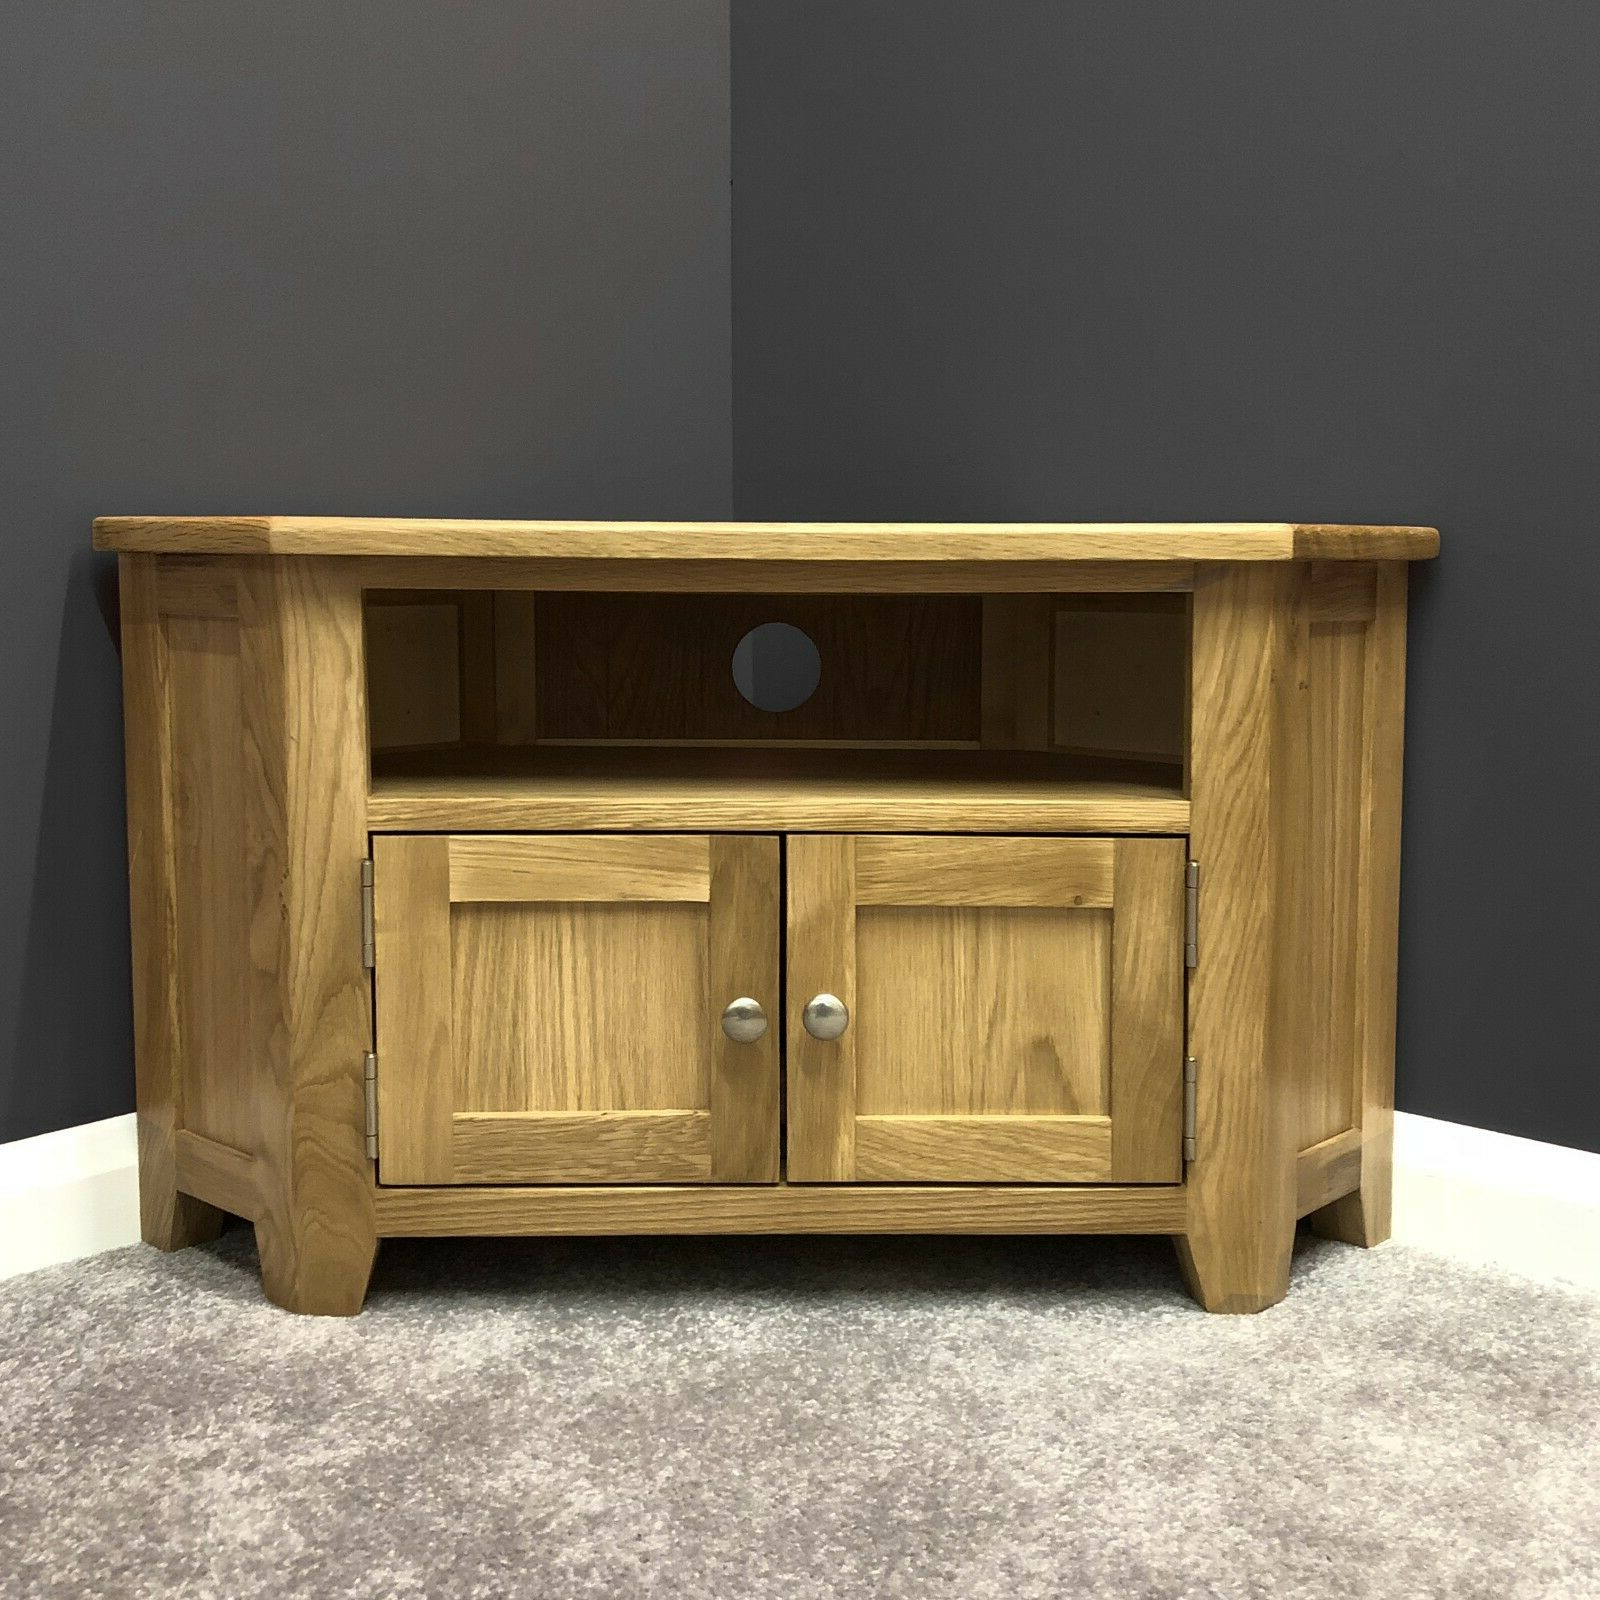 Preferred Sidmouth Oak Corner Tv Stands Regarding Oak Corner Tv Stand With Doors / Solid Wood Television (View 1 of 10)